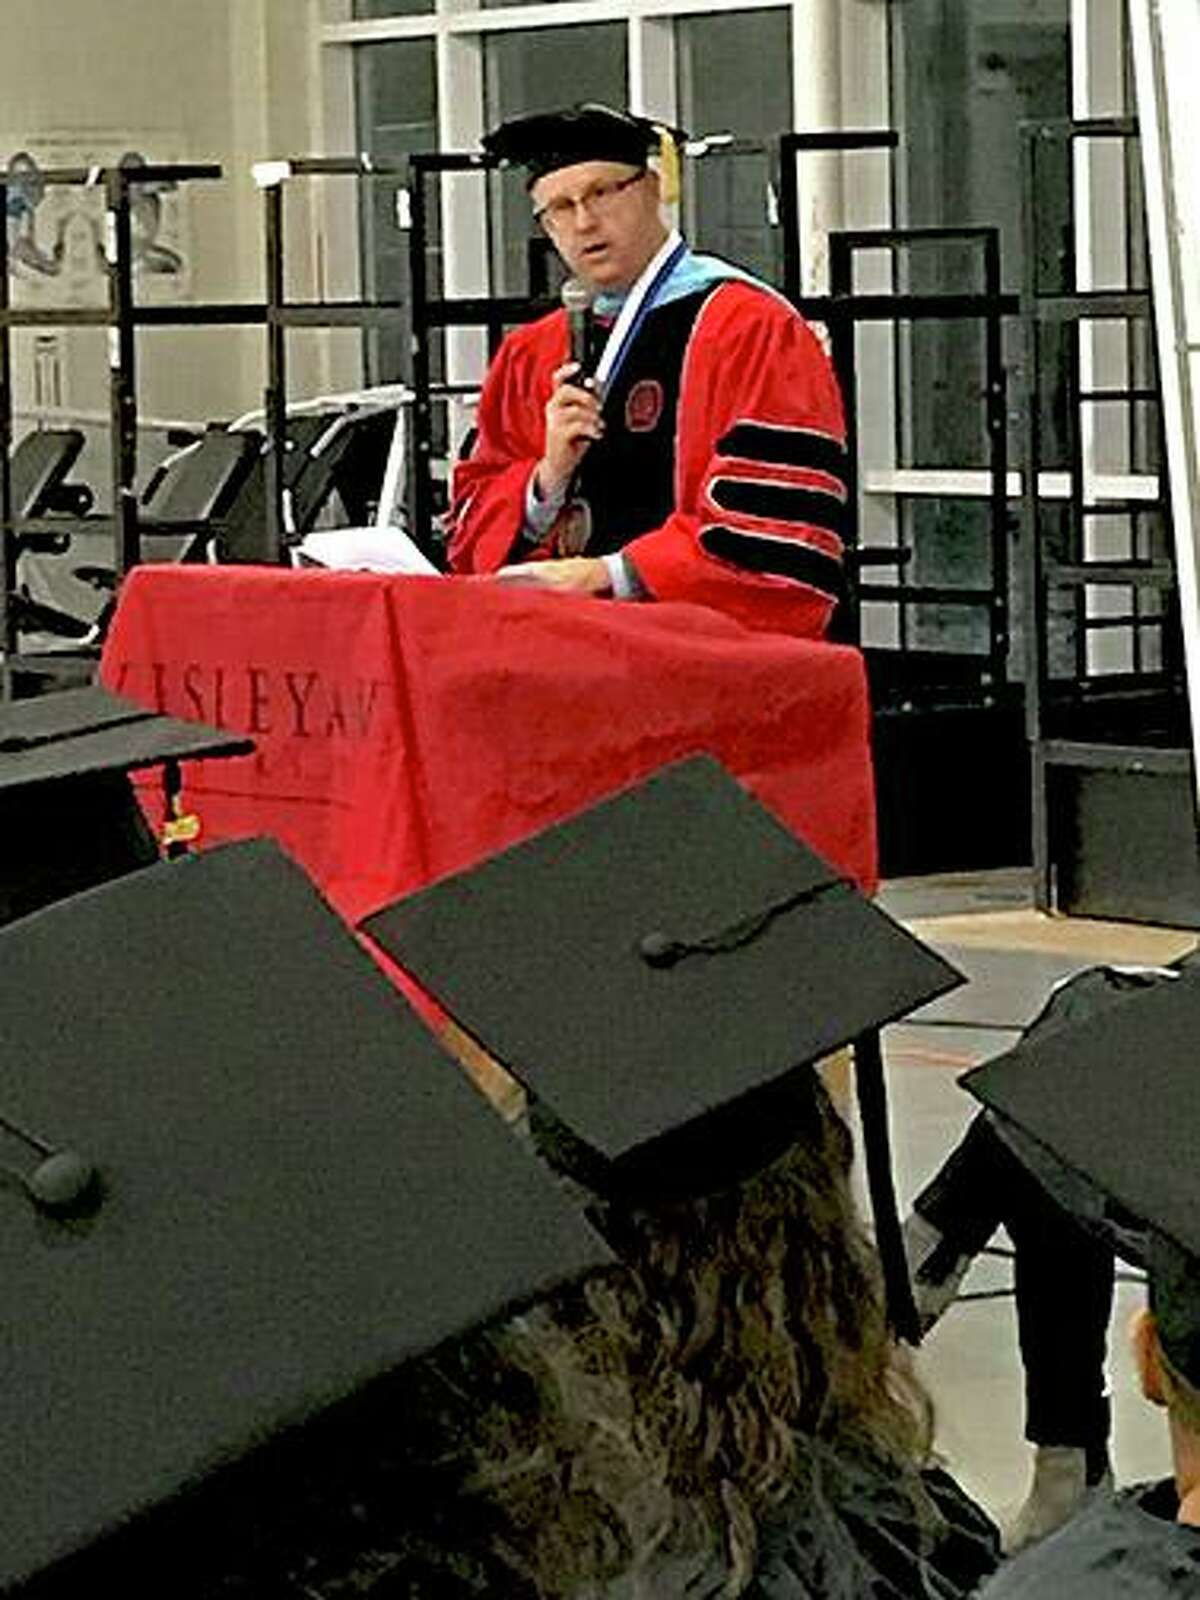 Dr. Steven Minkler, campus chief executive officer, Middlesex Community College, addresses graduates and attendees of the graduation ceremony at York Correctional Institution Tuesday.